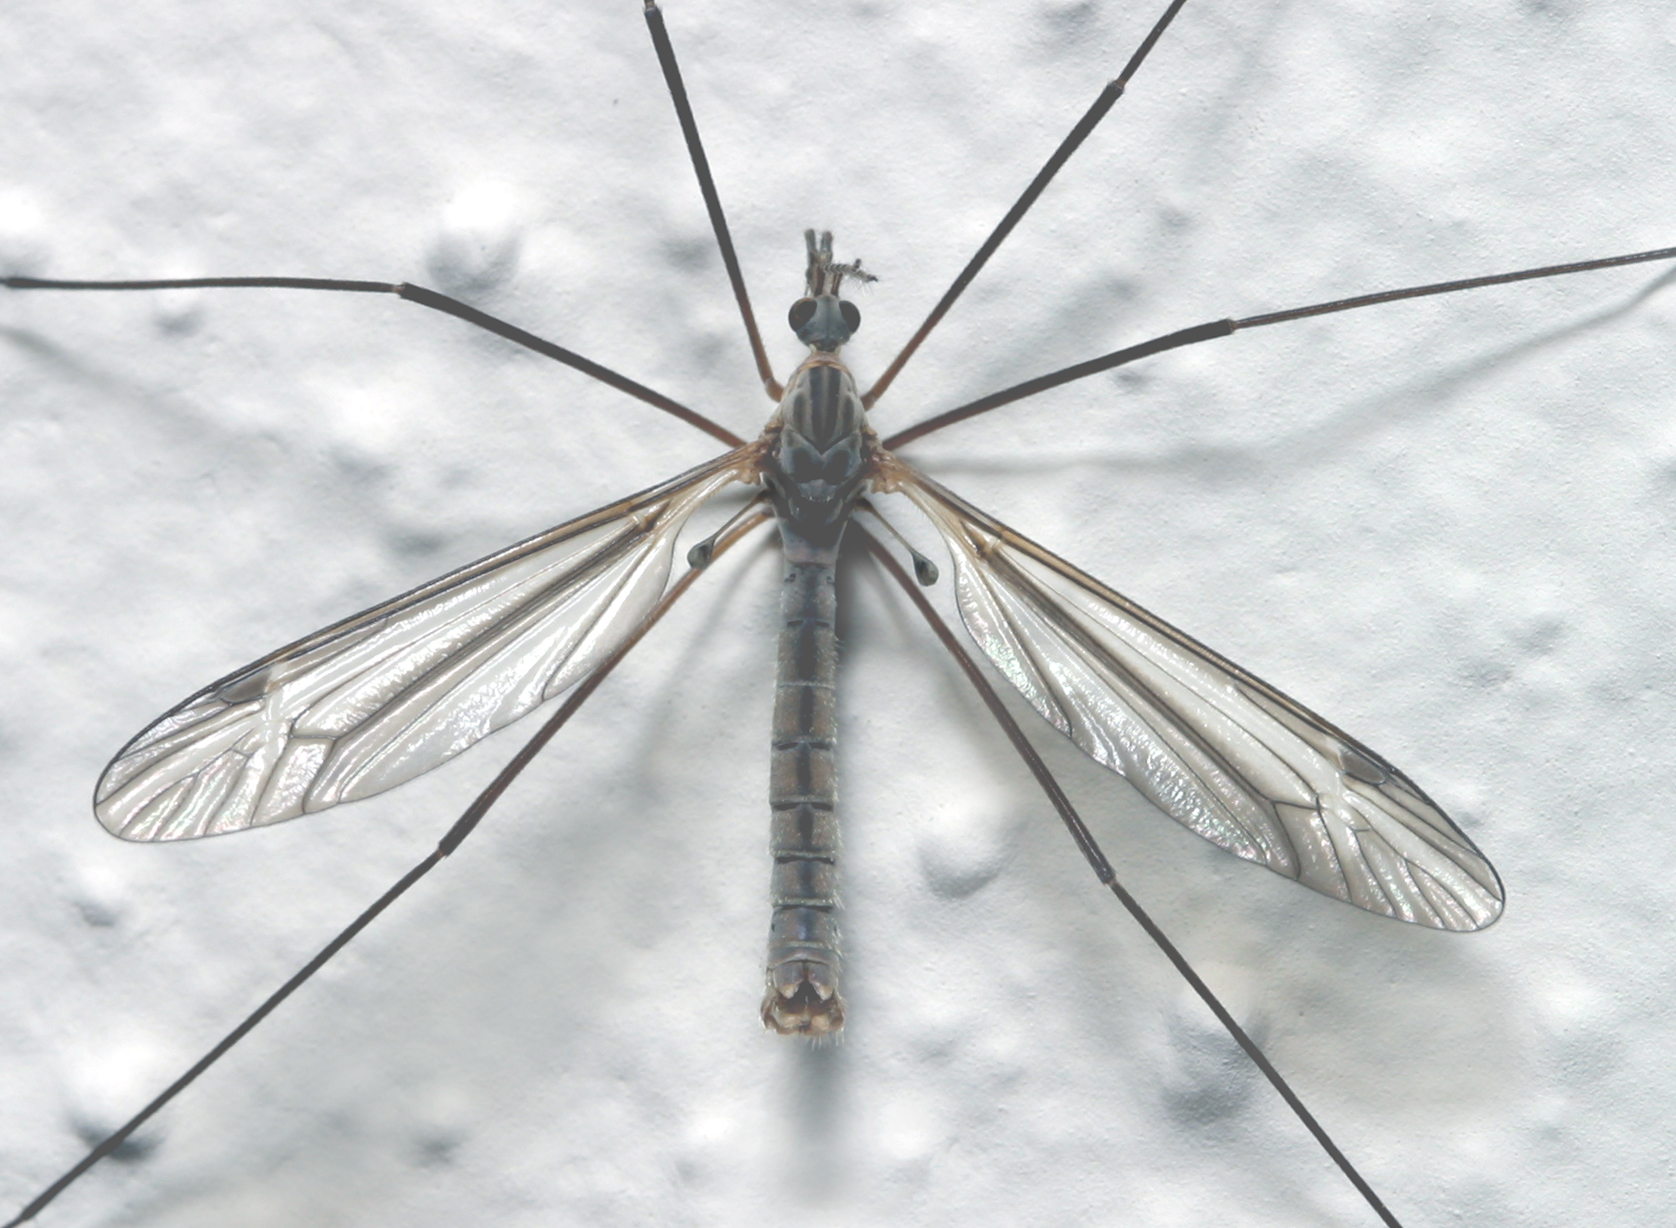 The long-legged crane flies are one of the early insect harbingers of spring.